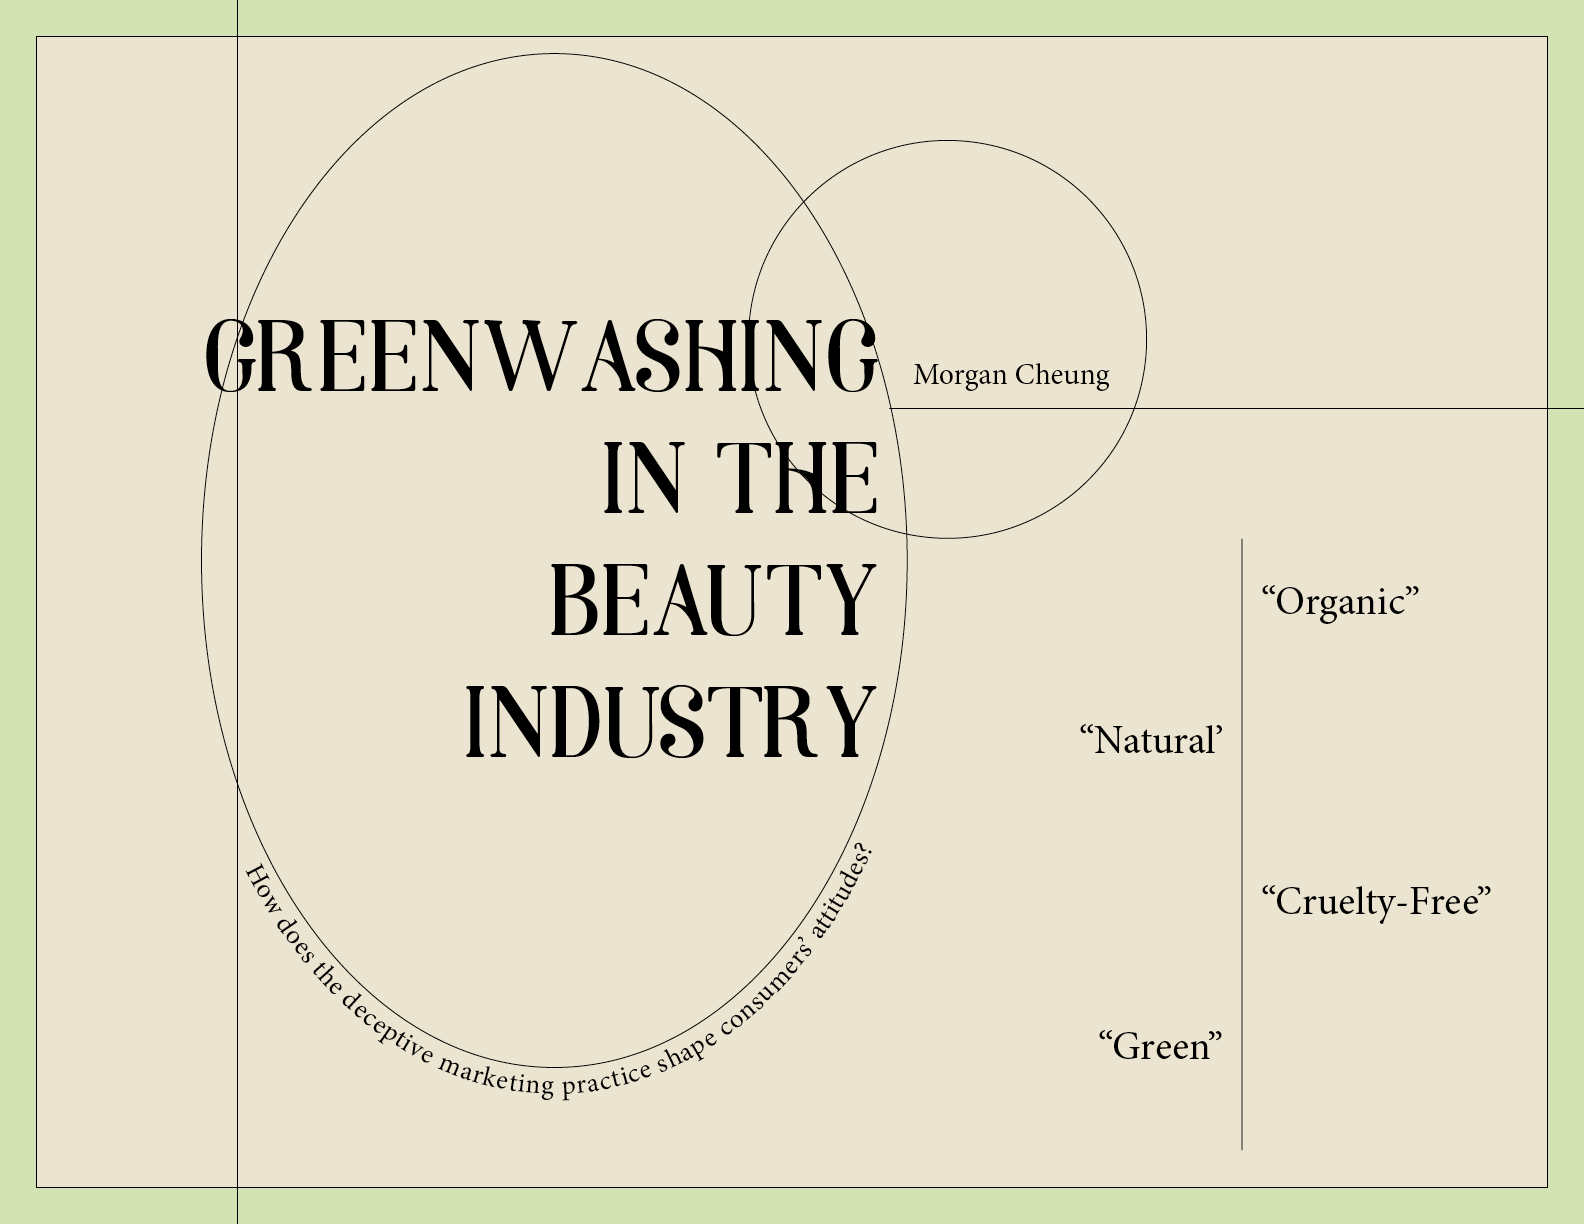 Greenwashing in the Beauty Industry